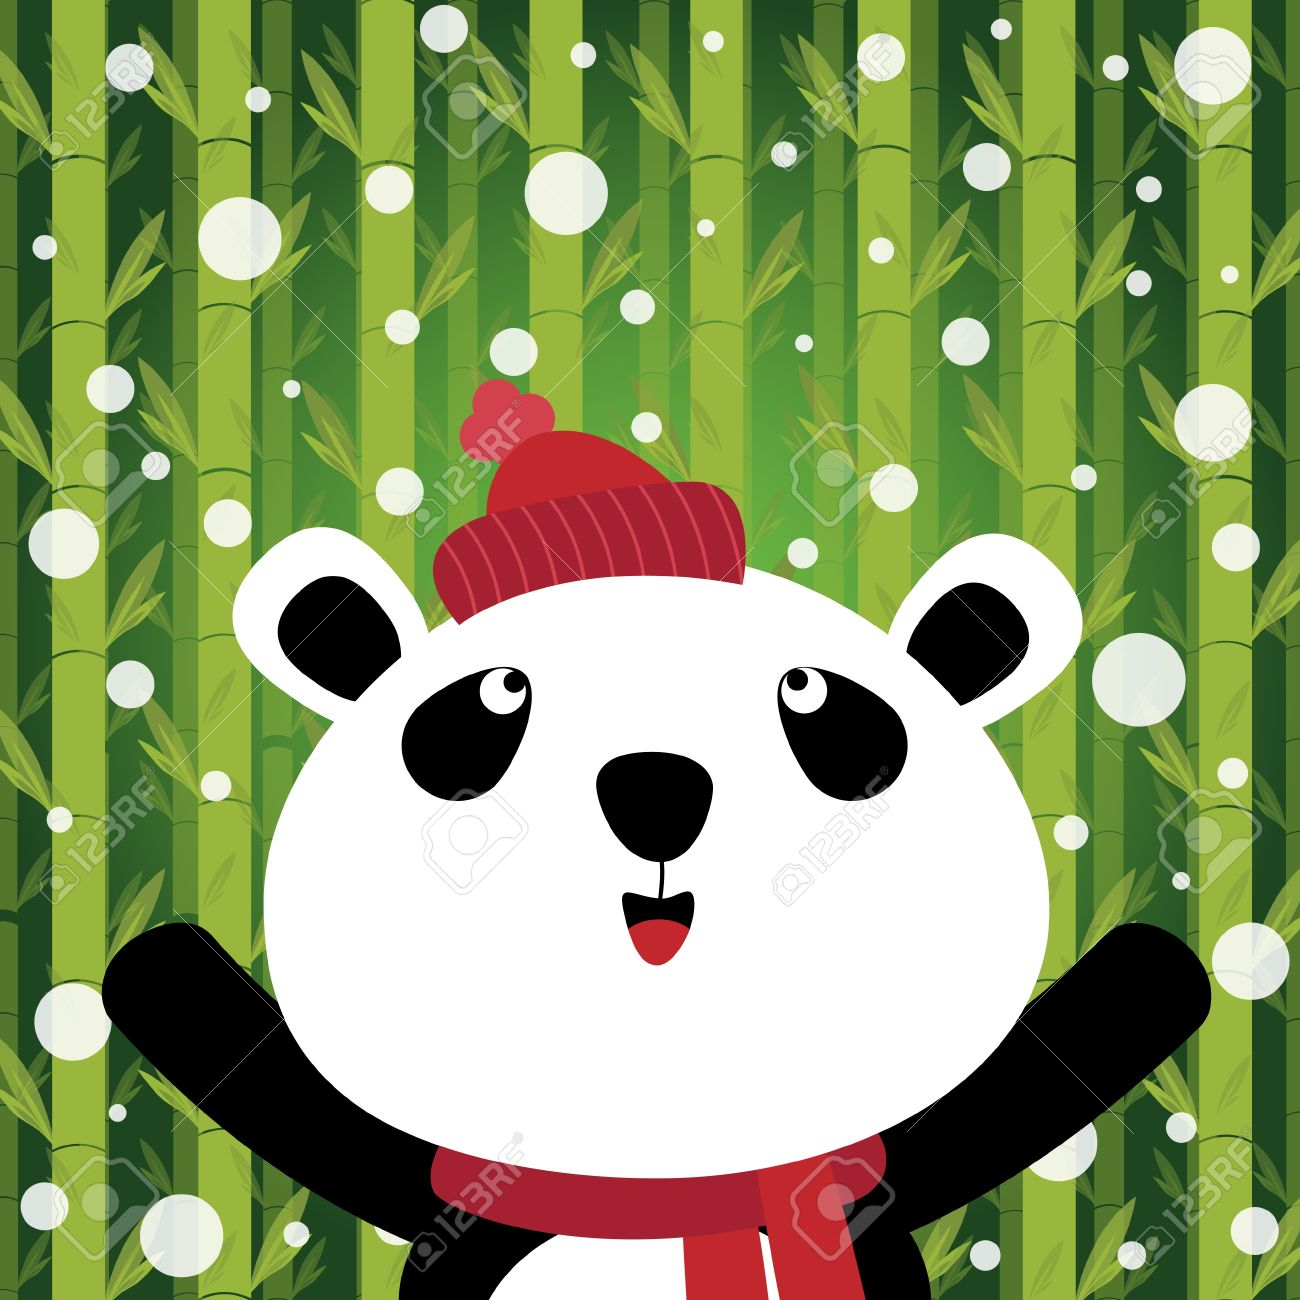 Panda And Snow On Bamboo Background Royalty Free Cliparts, Vectors.